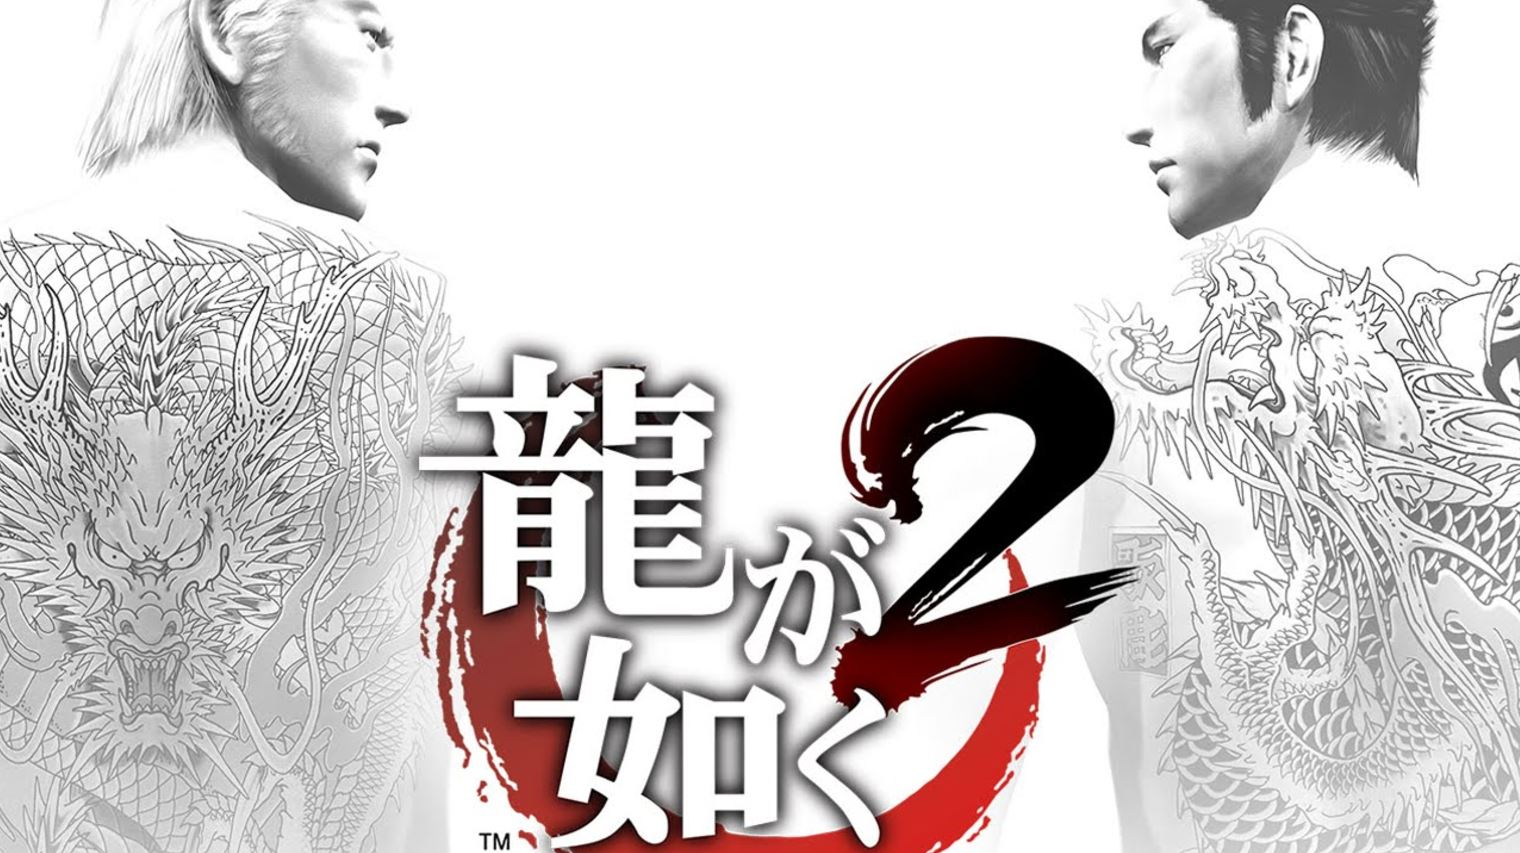 Yakuza 2 will receive a Kiwami HD remake, per leak